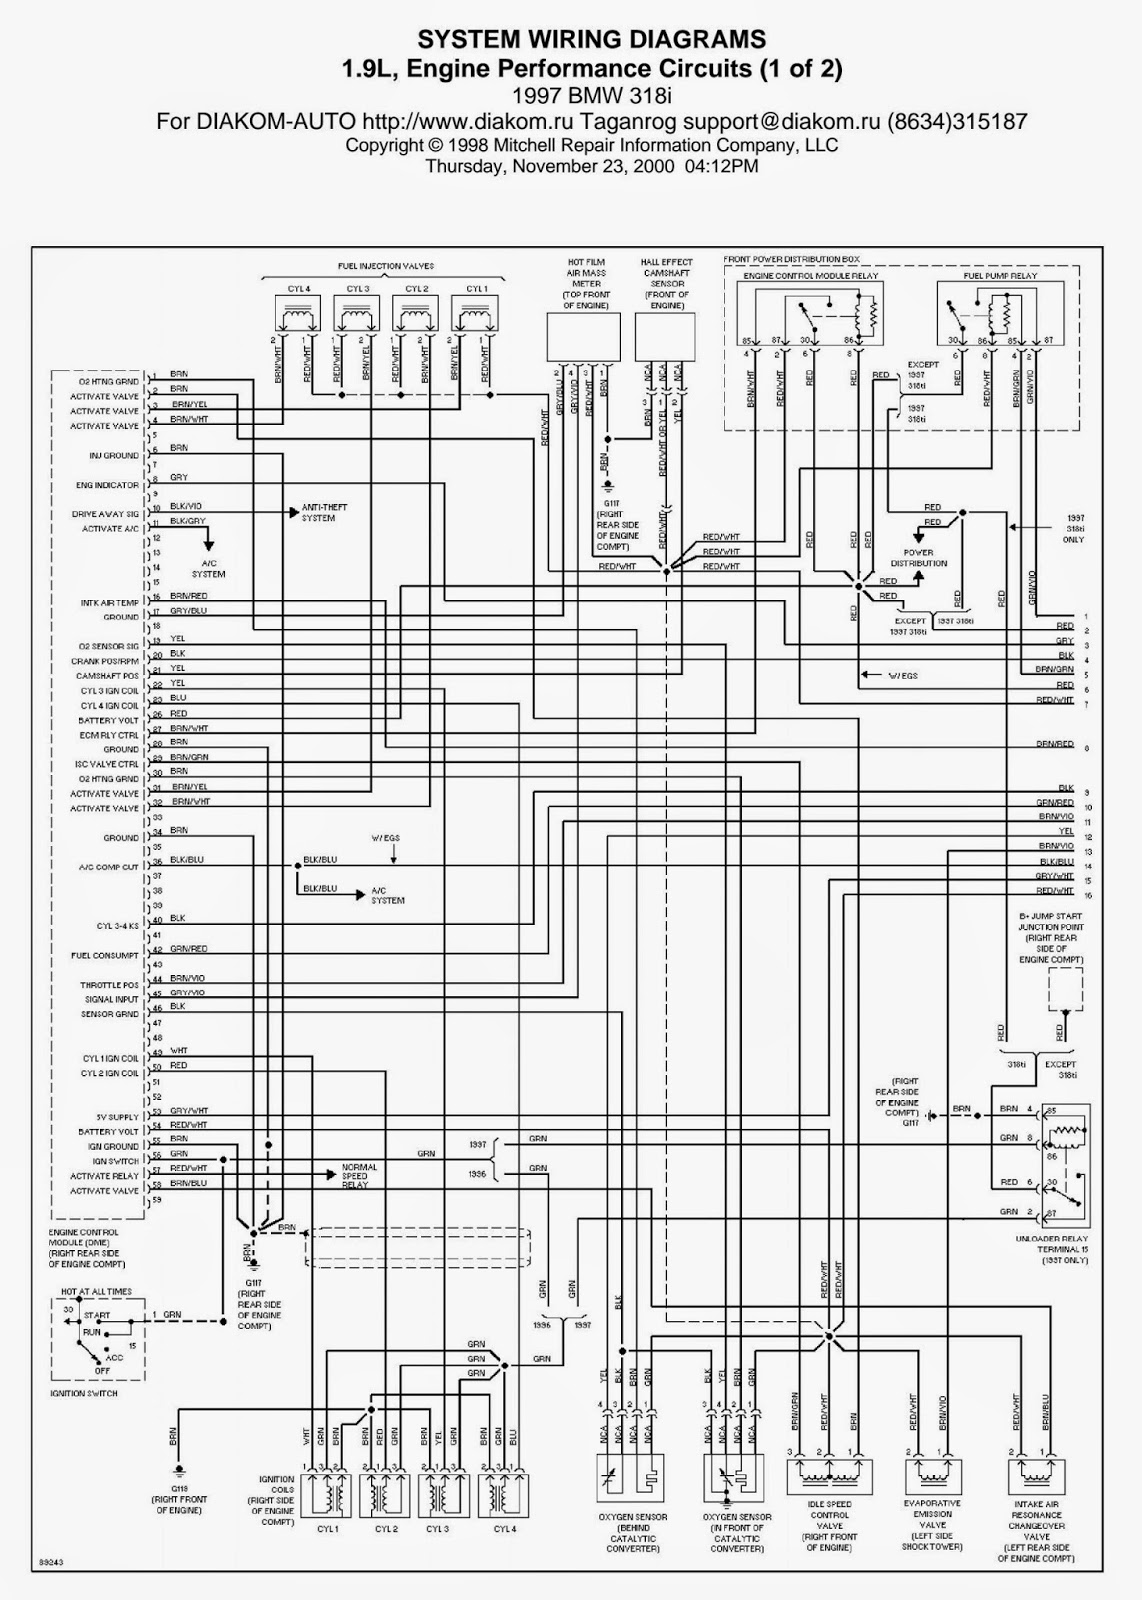 1997 318i engine diagram 1997 bmw 318i engine diagram